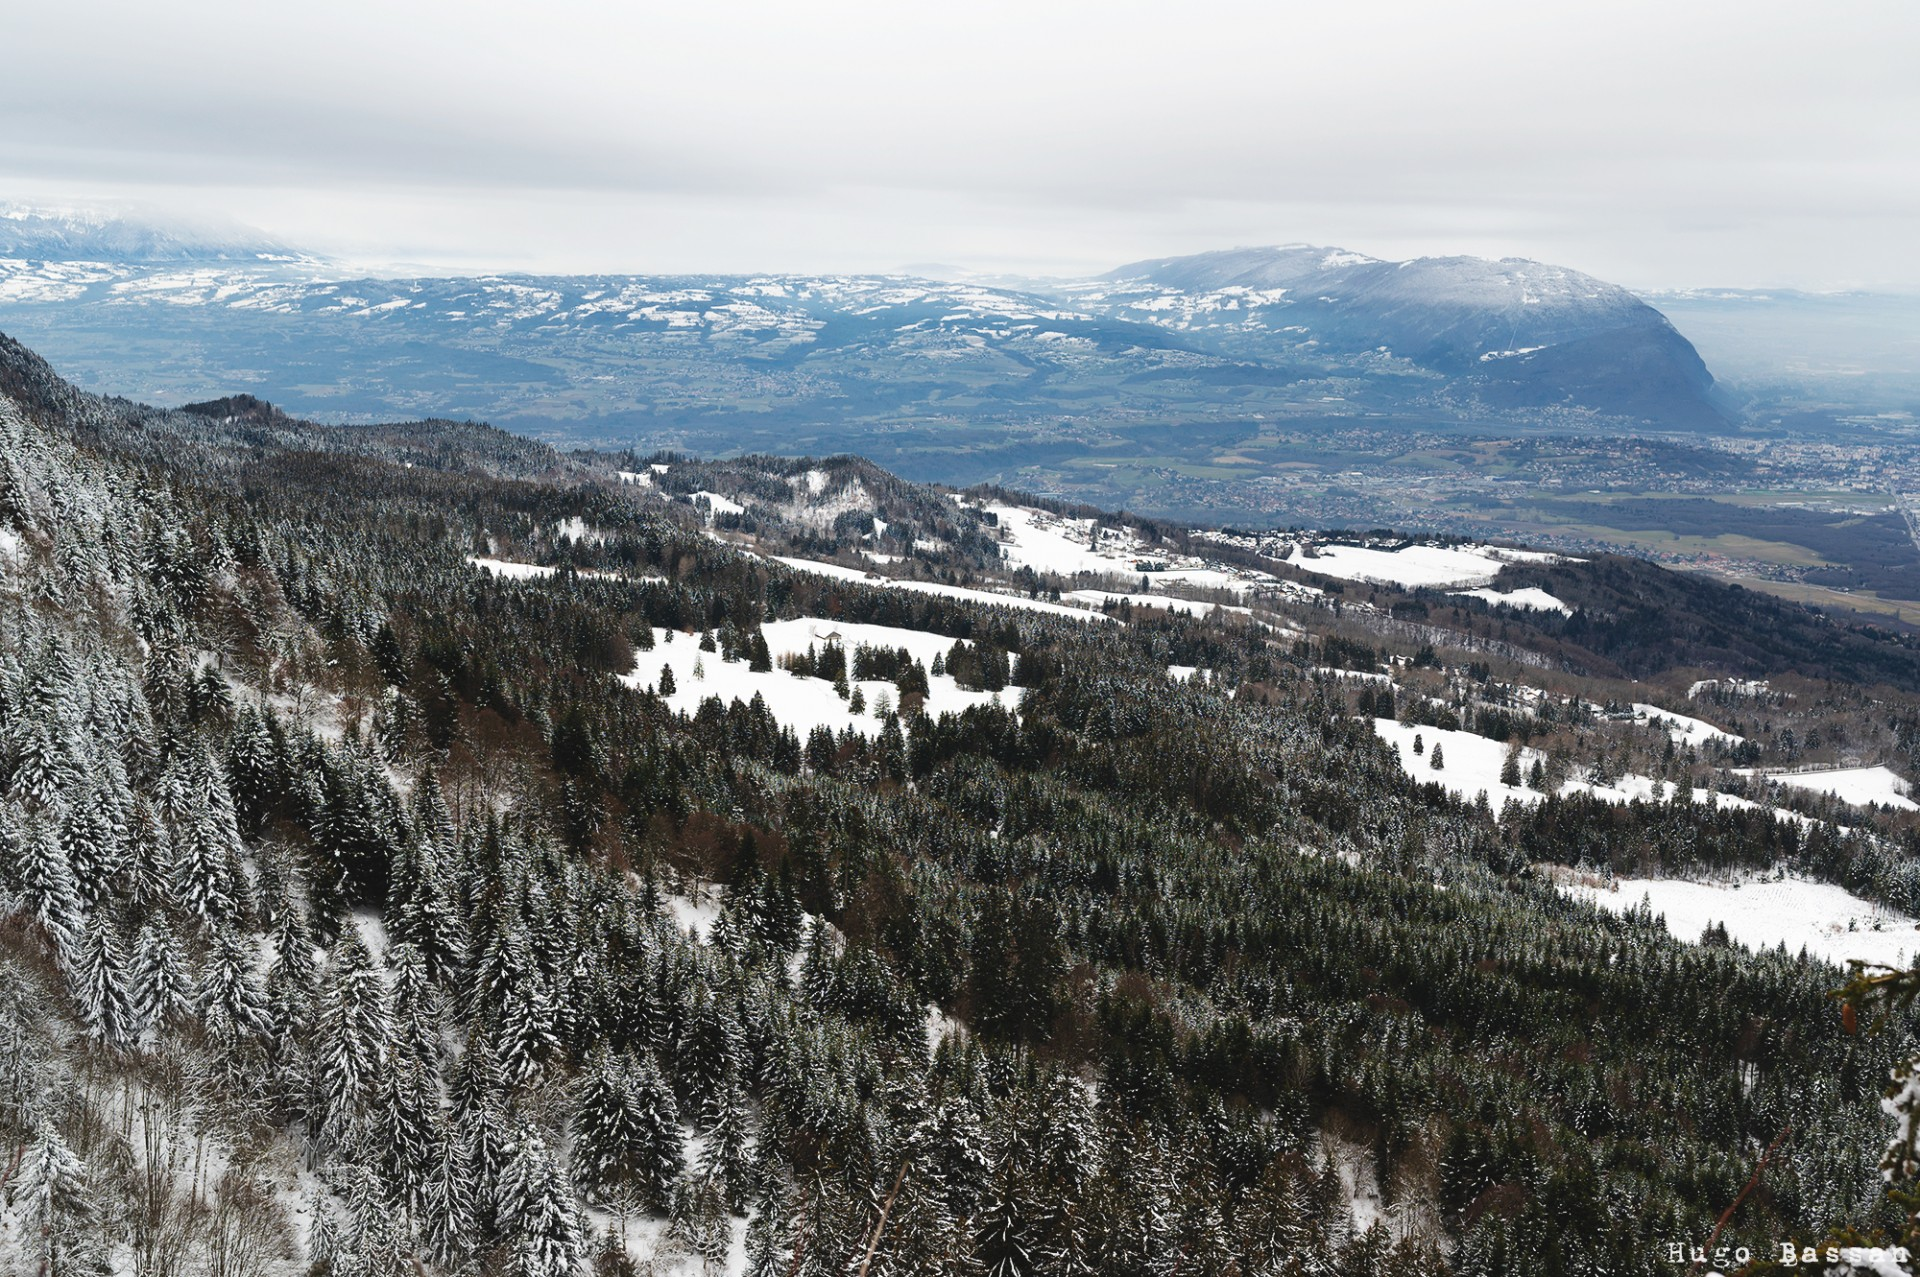 View from the top of the mountain